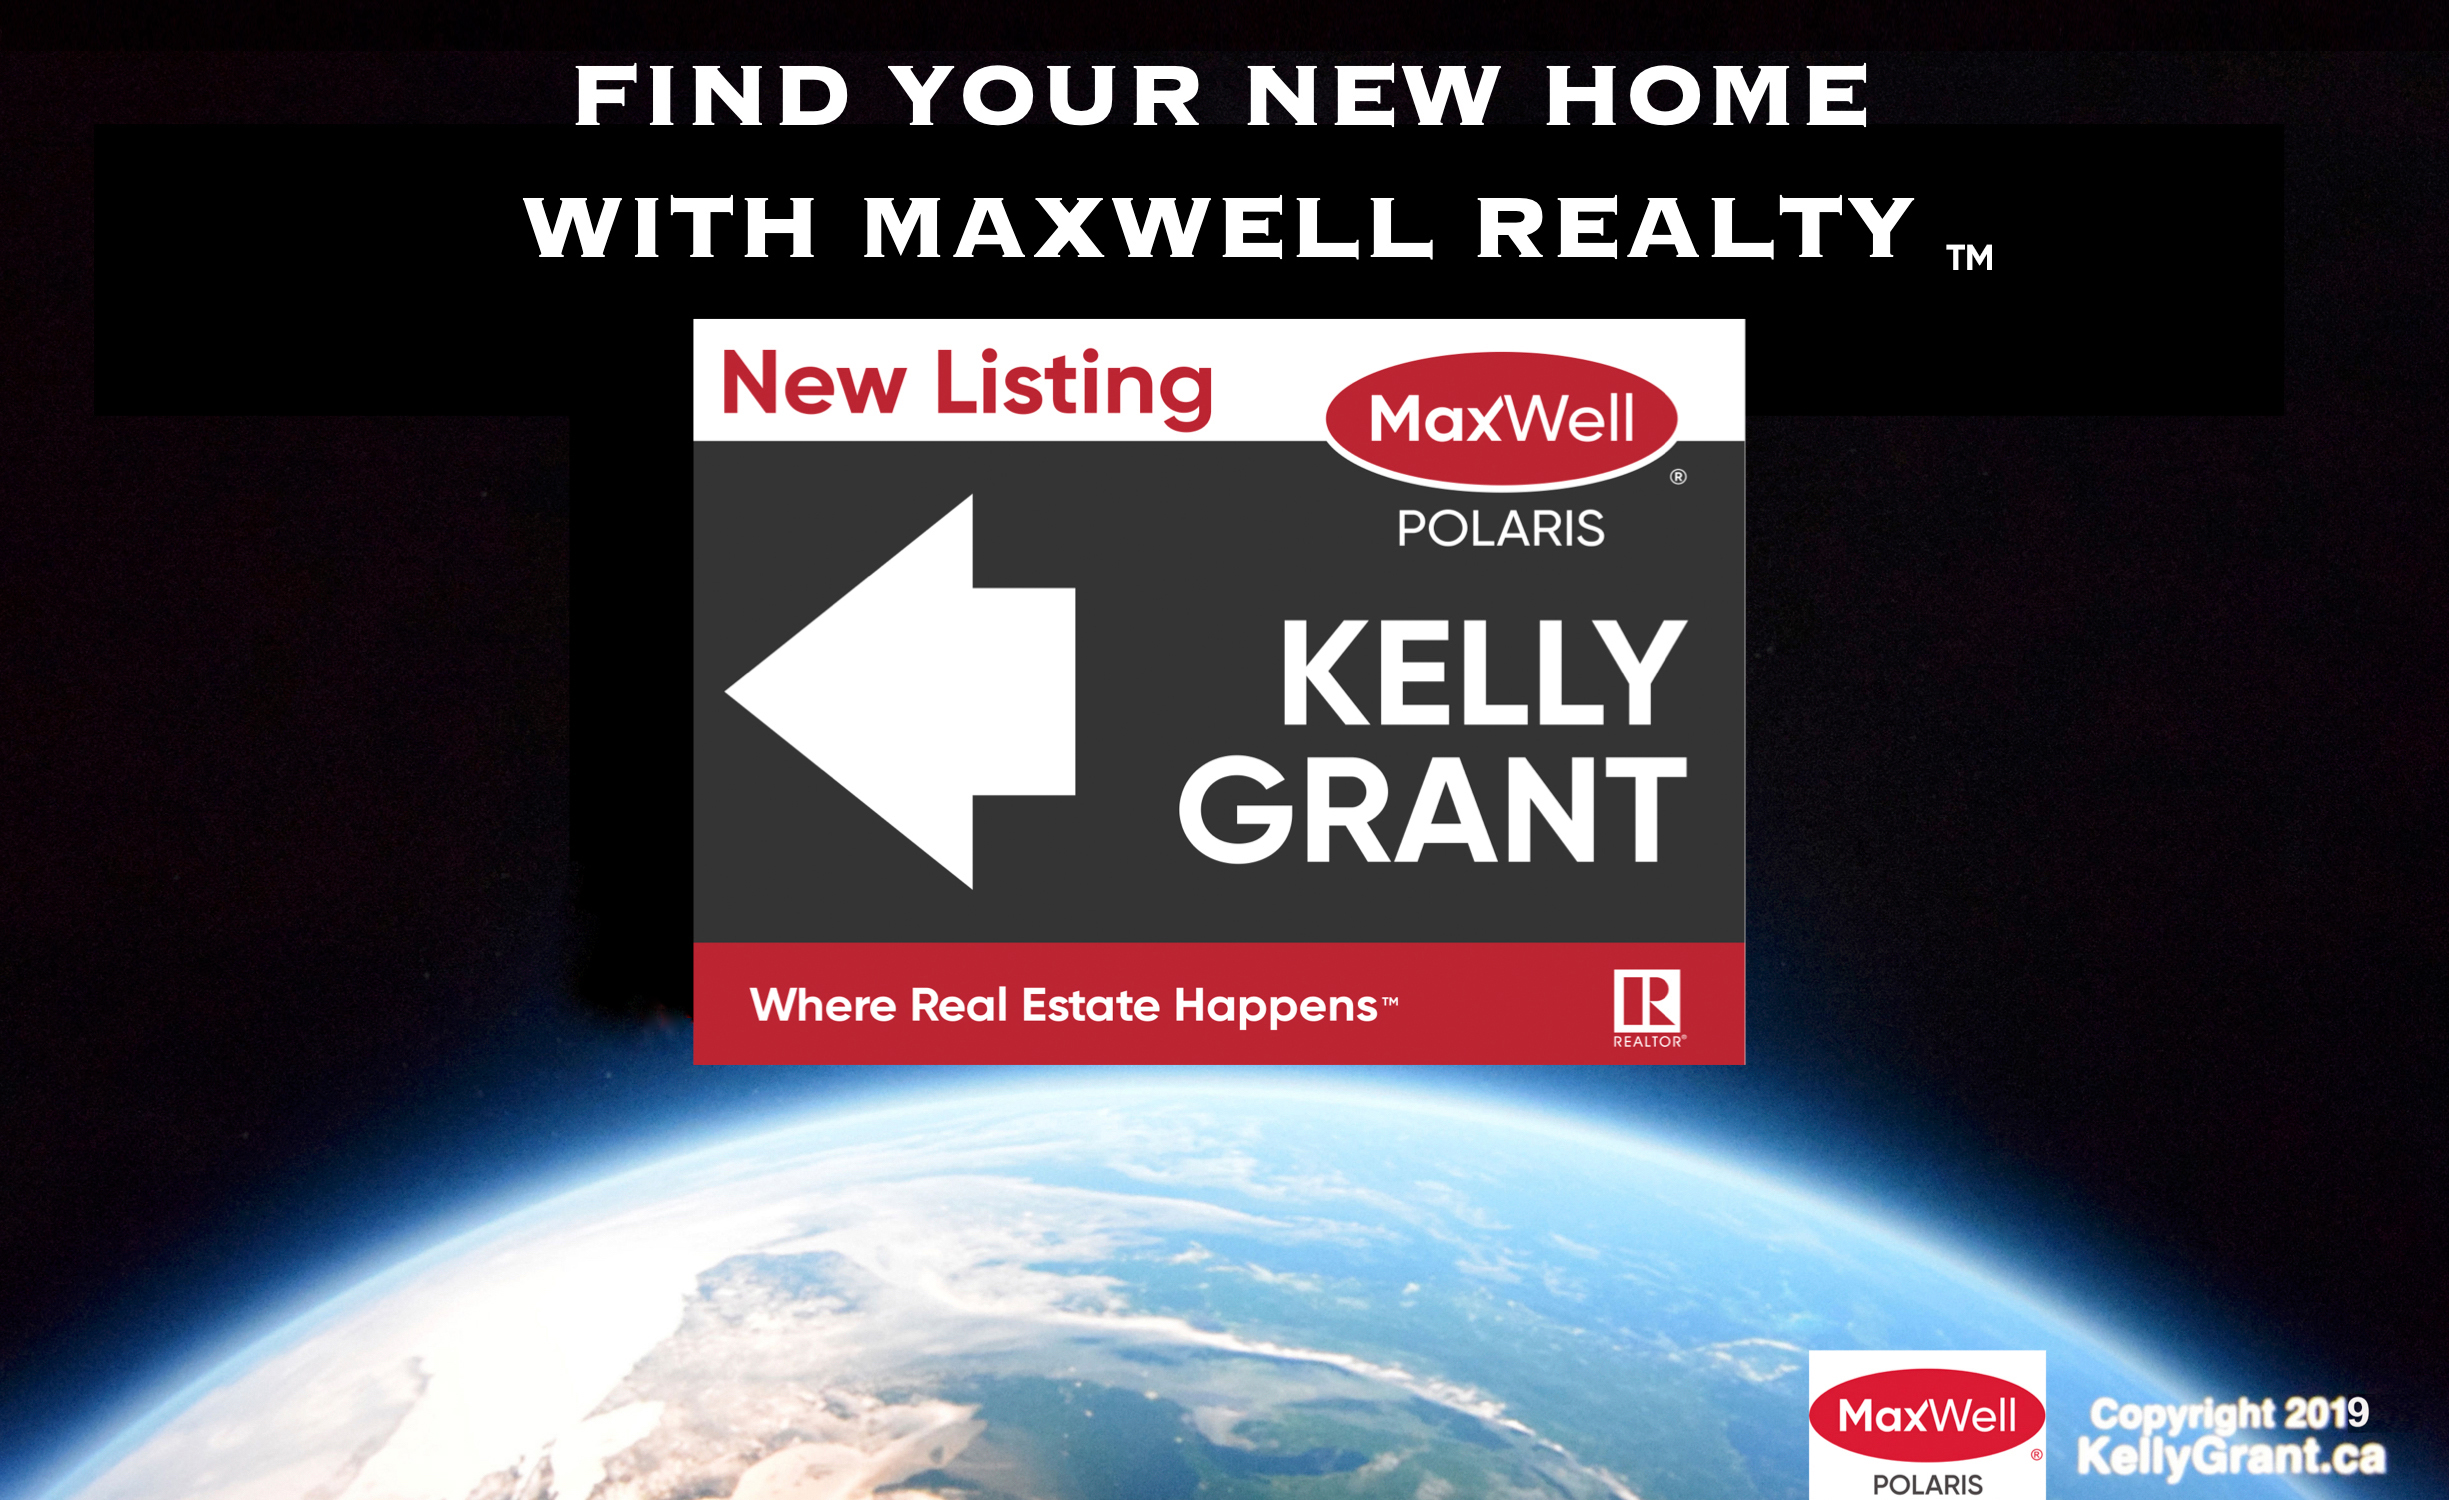 #21-KG MaxWell Find Your New Home.jpg